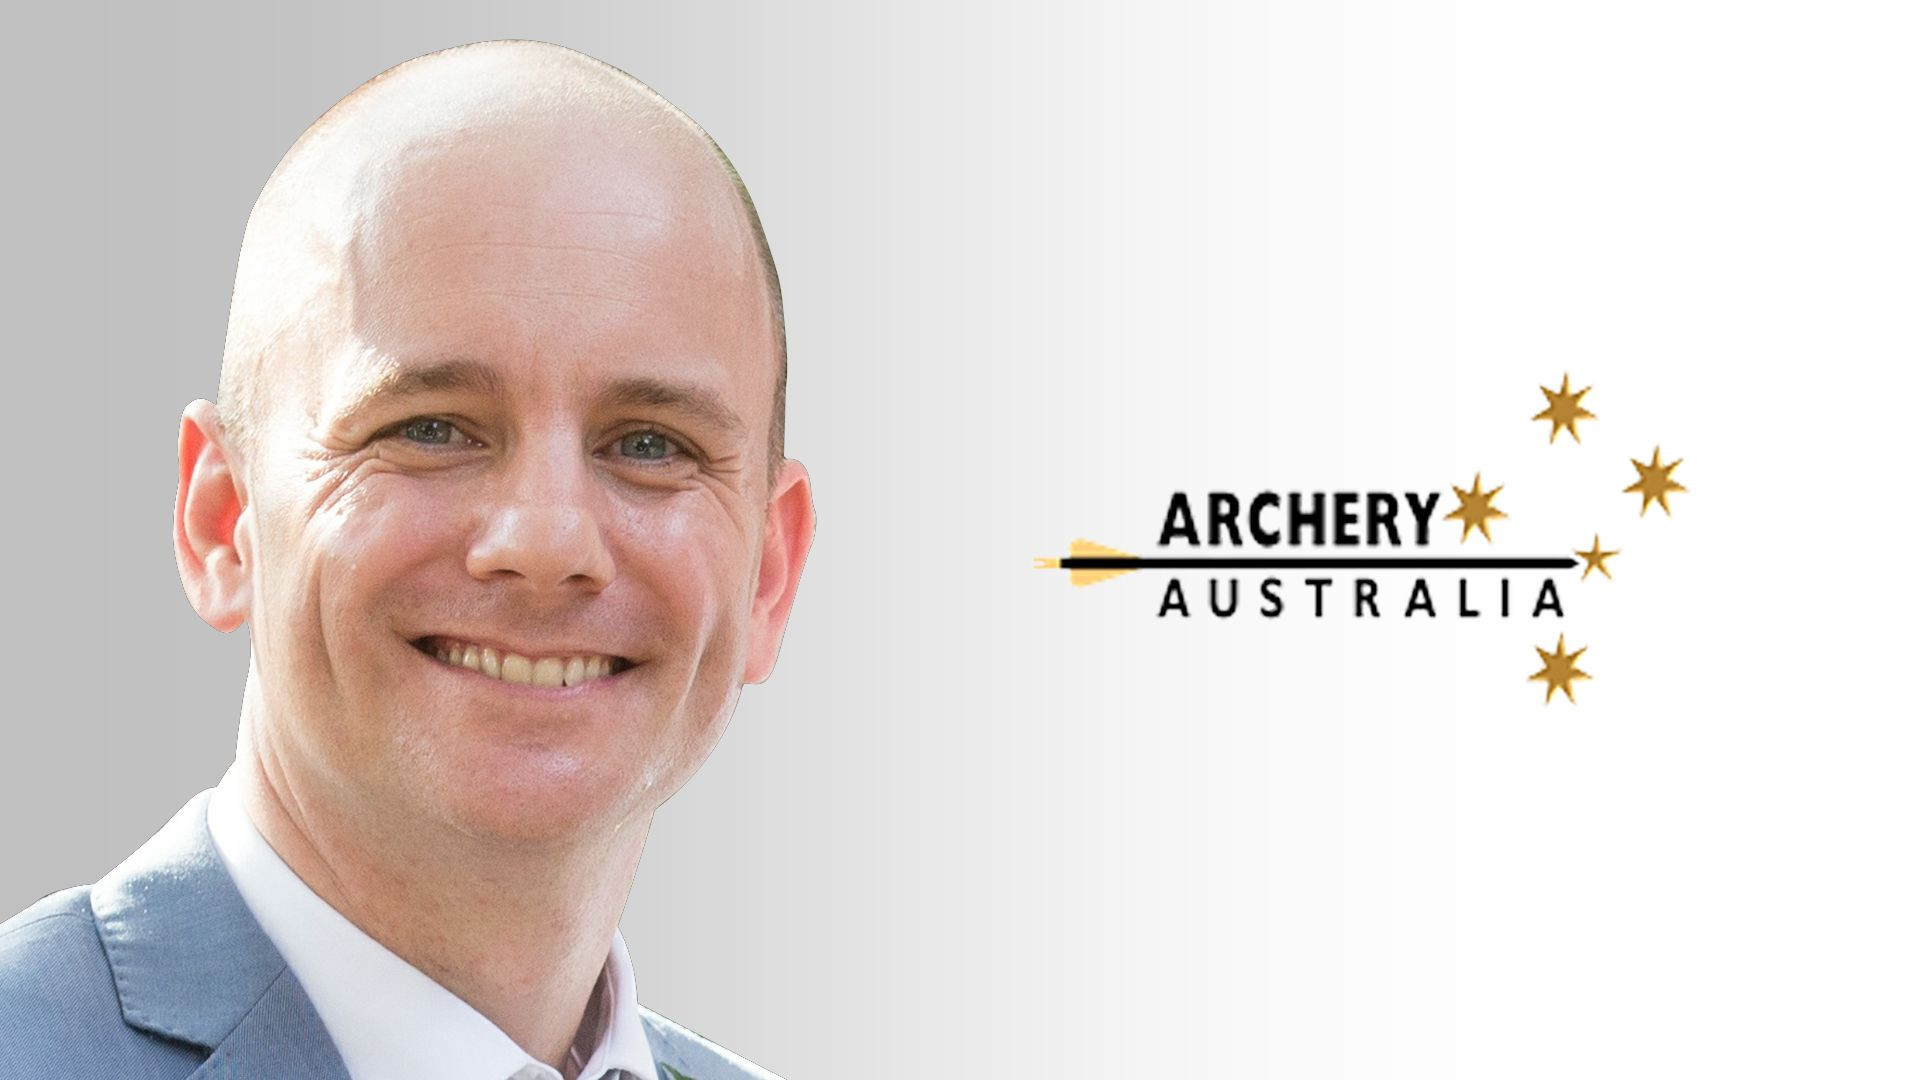 Australian Archery appoints new chief executive